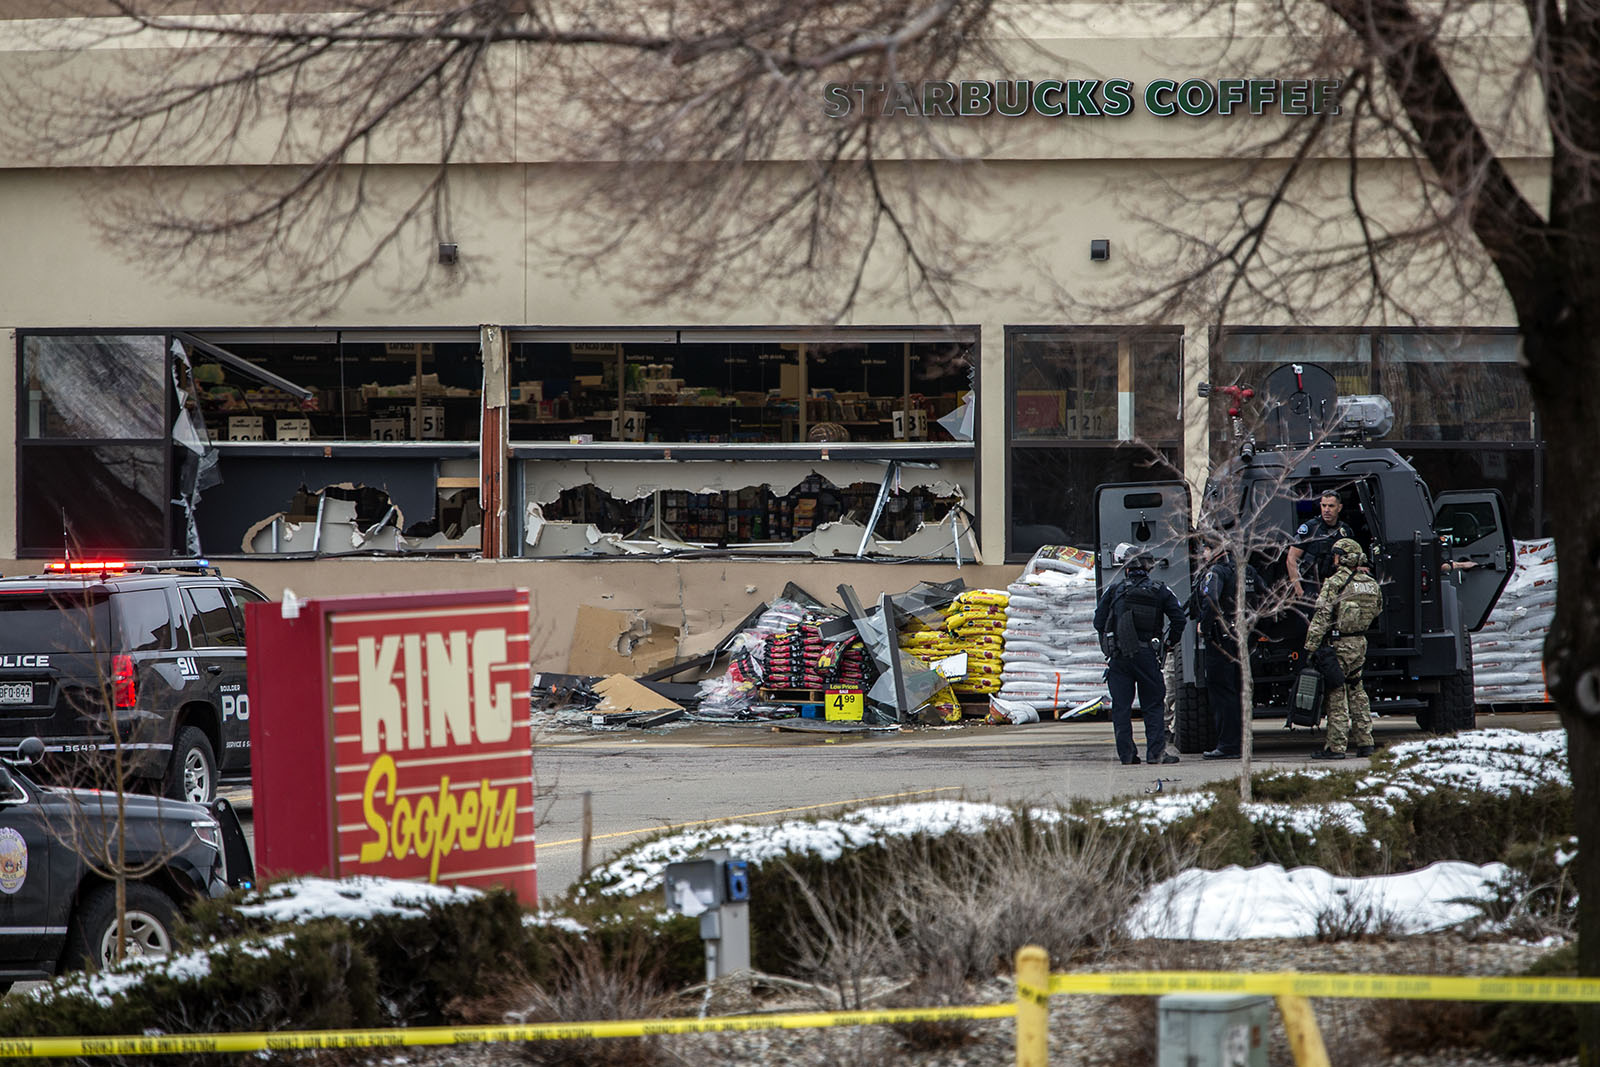 Tactical police units respond to the scene of a King Soopers grocery store after a shooting on March 22, in Boulder, Colorado.